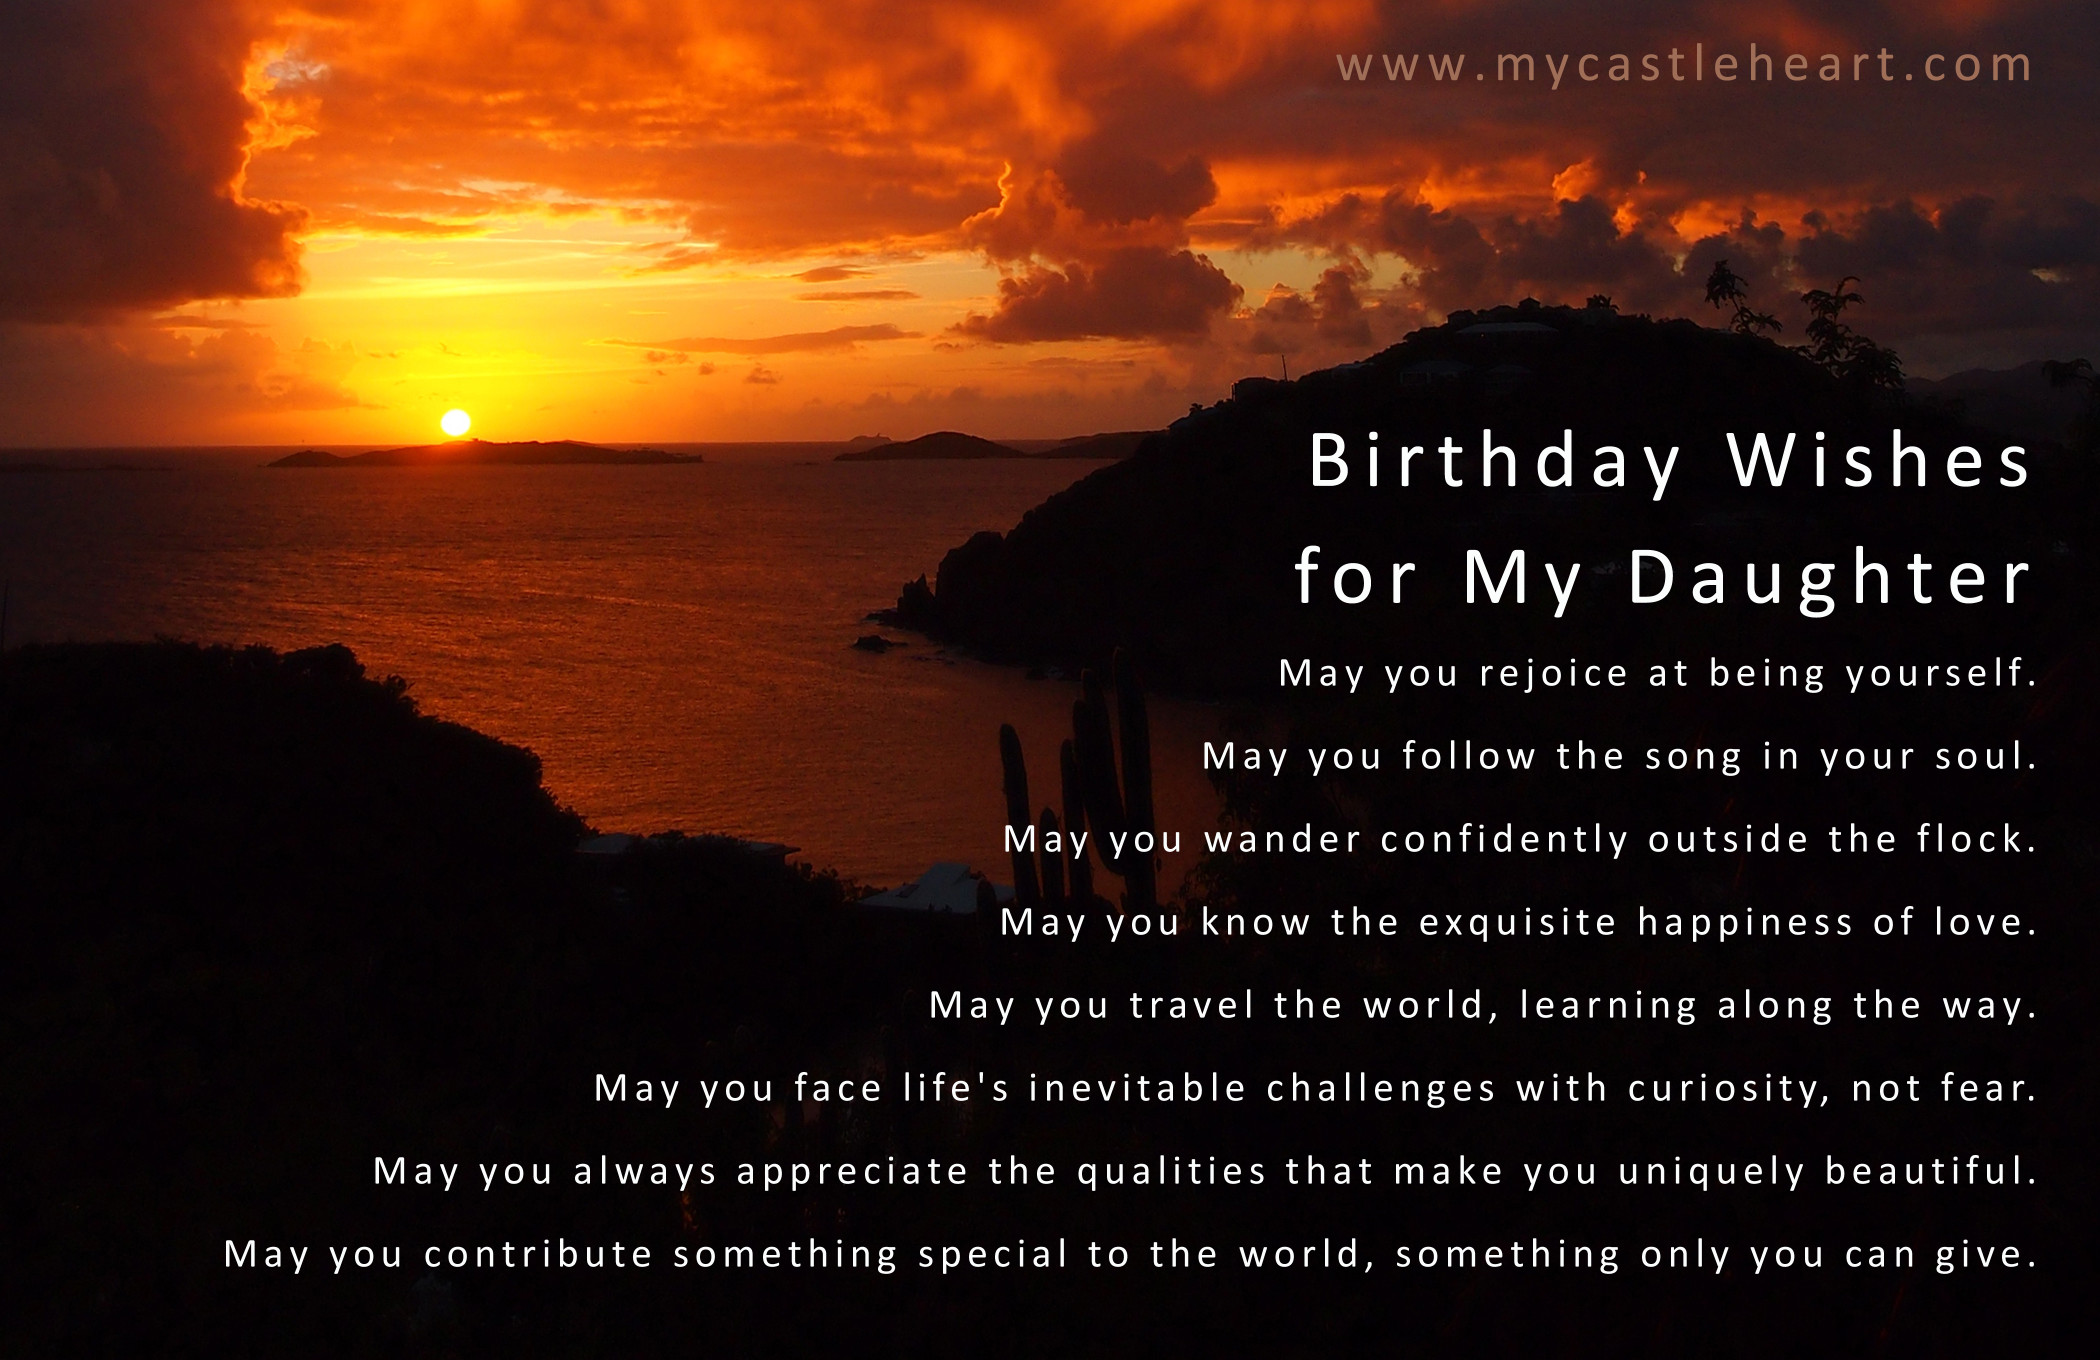 Best ideas about Birthday Wishes For Daughter From Mother . Save or Pin Birthday Wishes for My Daughter Now.